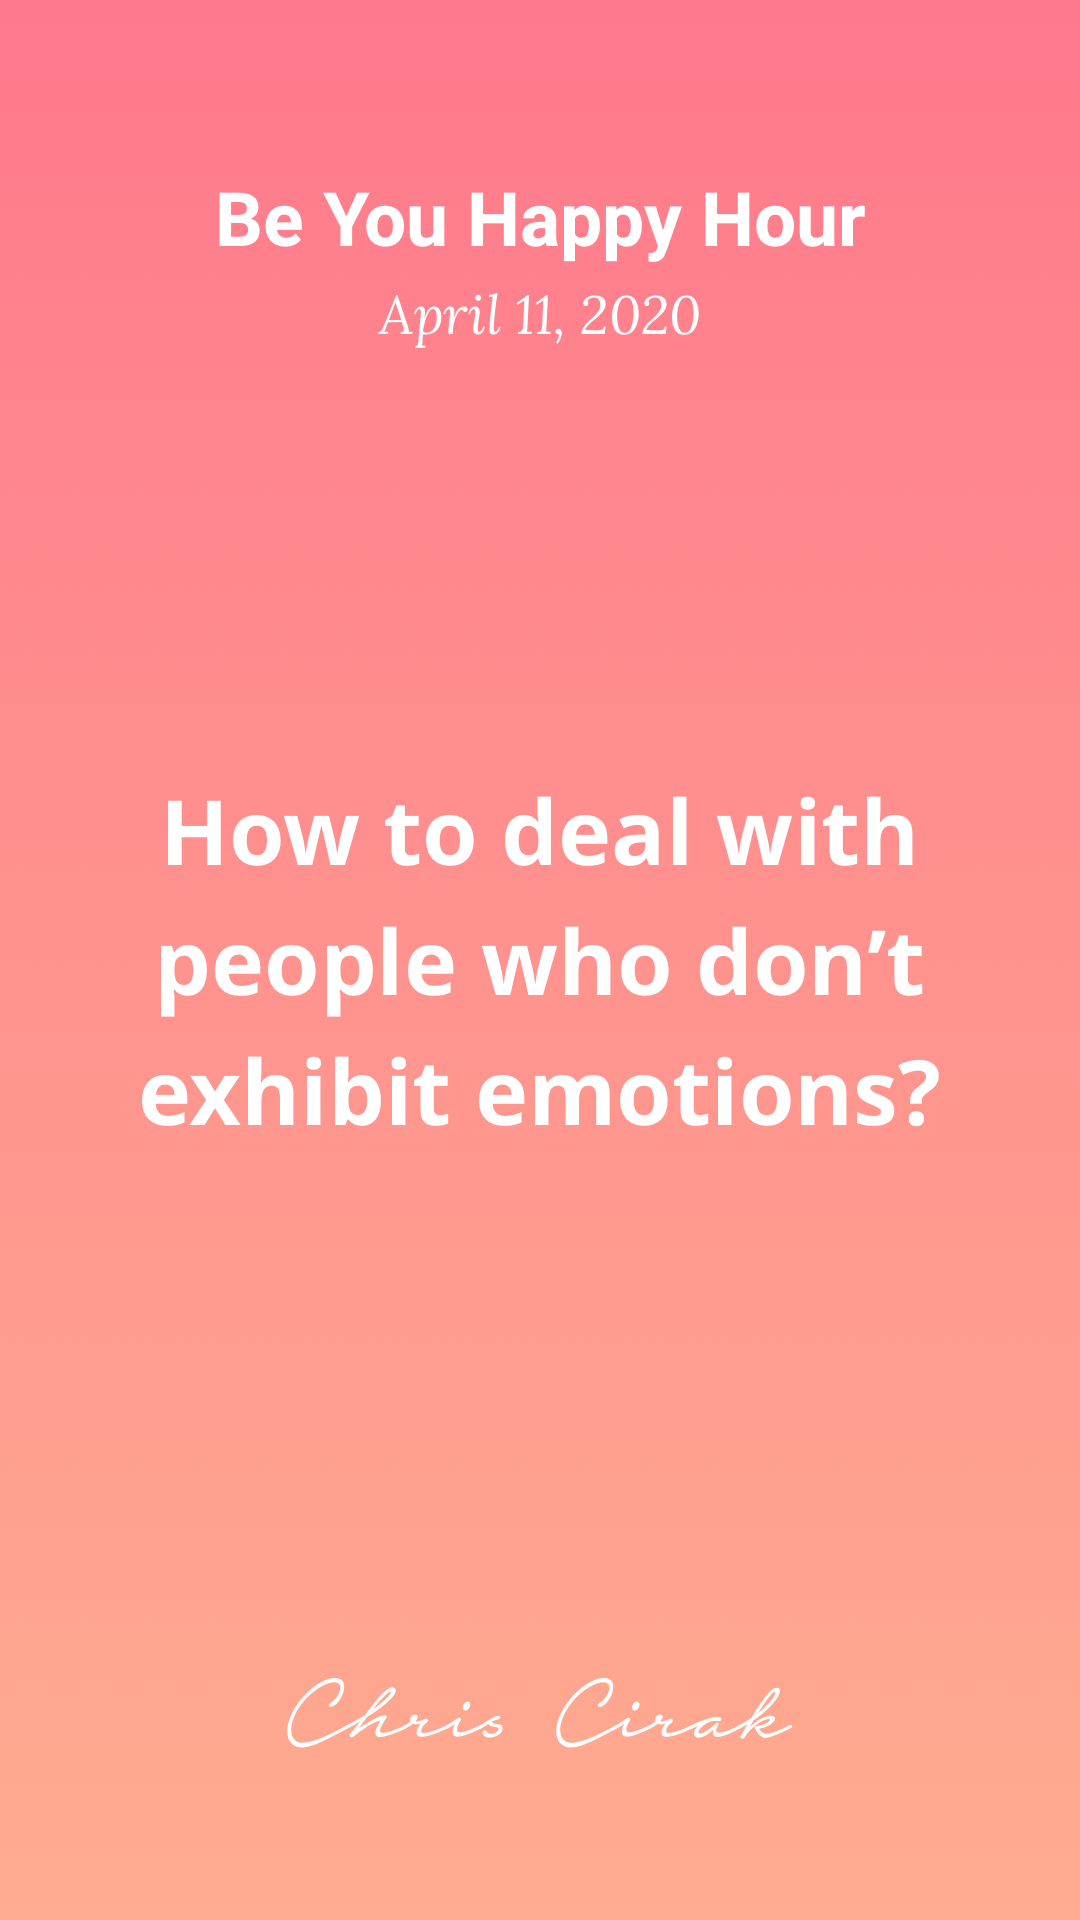 How to deal with people who don't exhibit emotions?